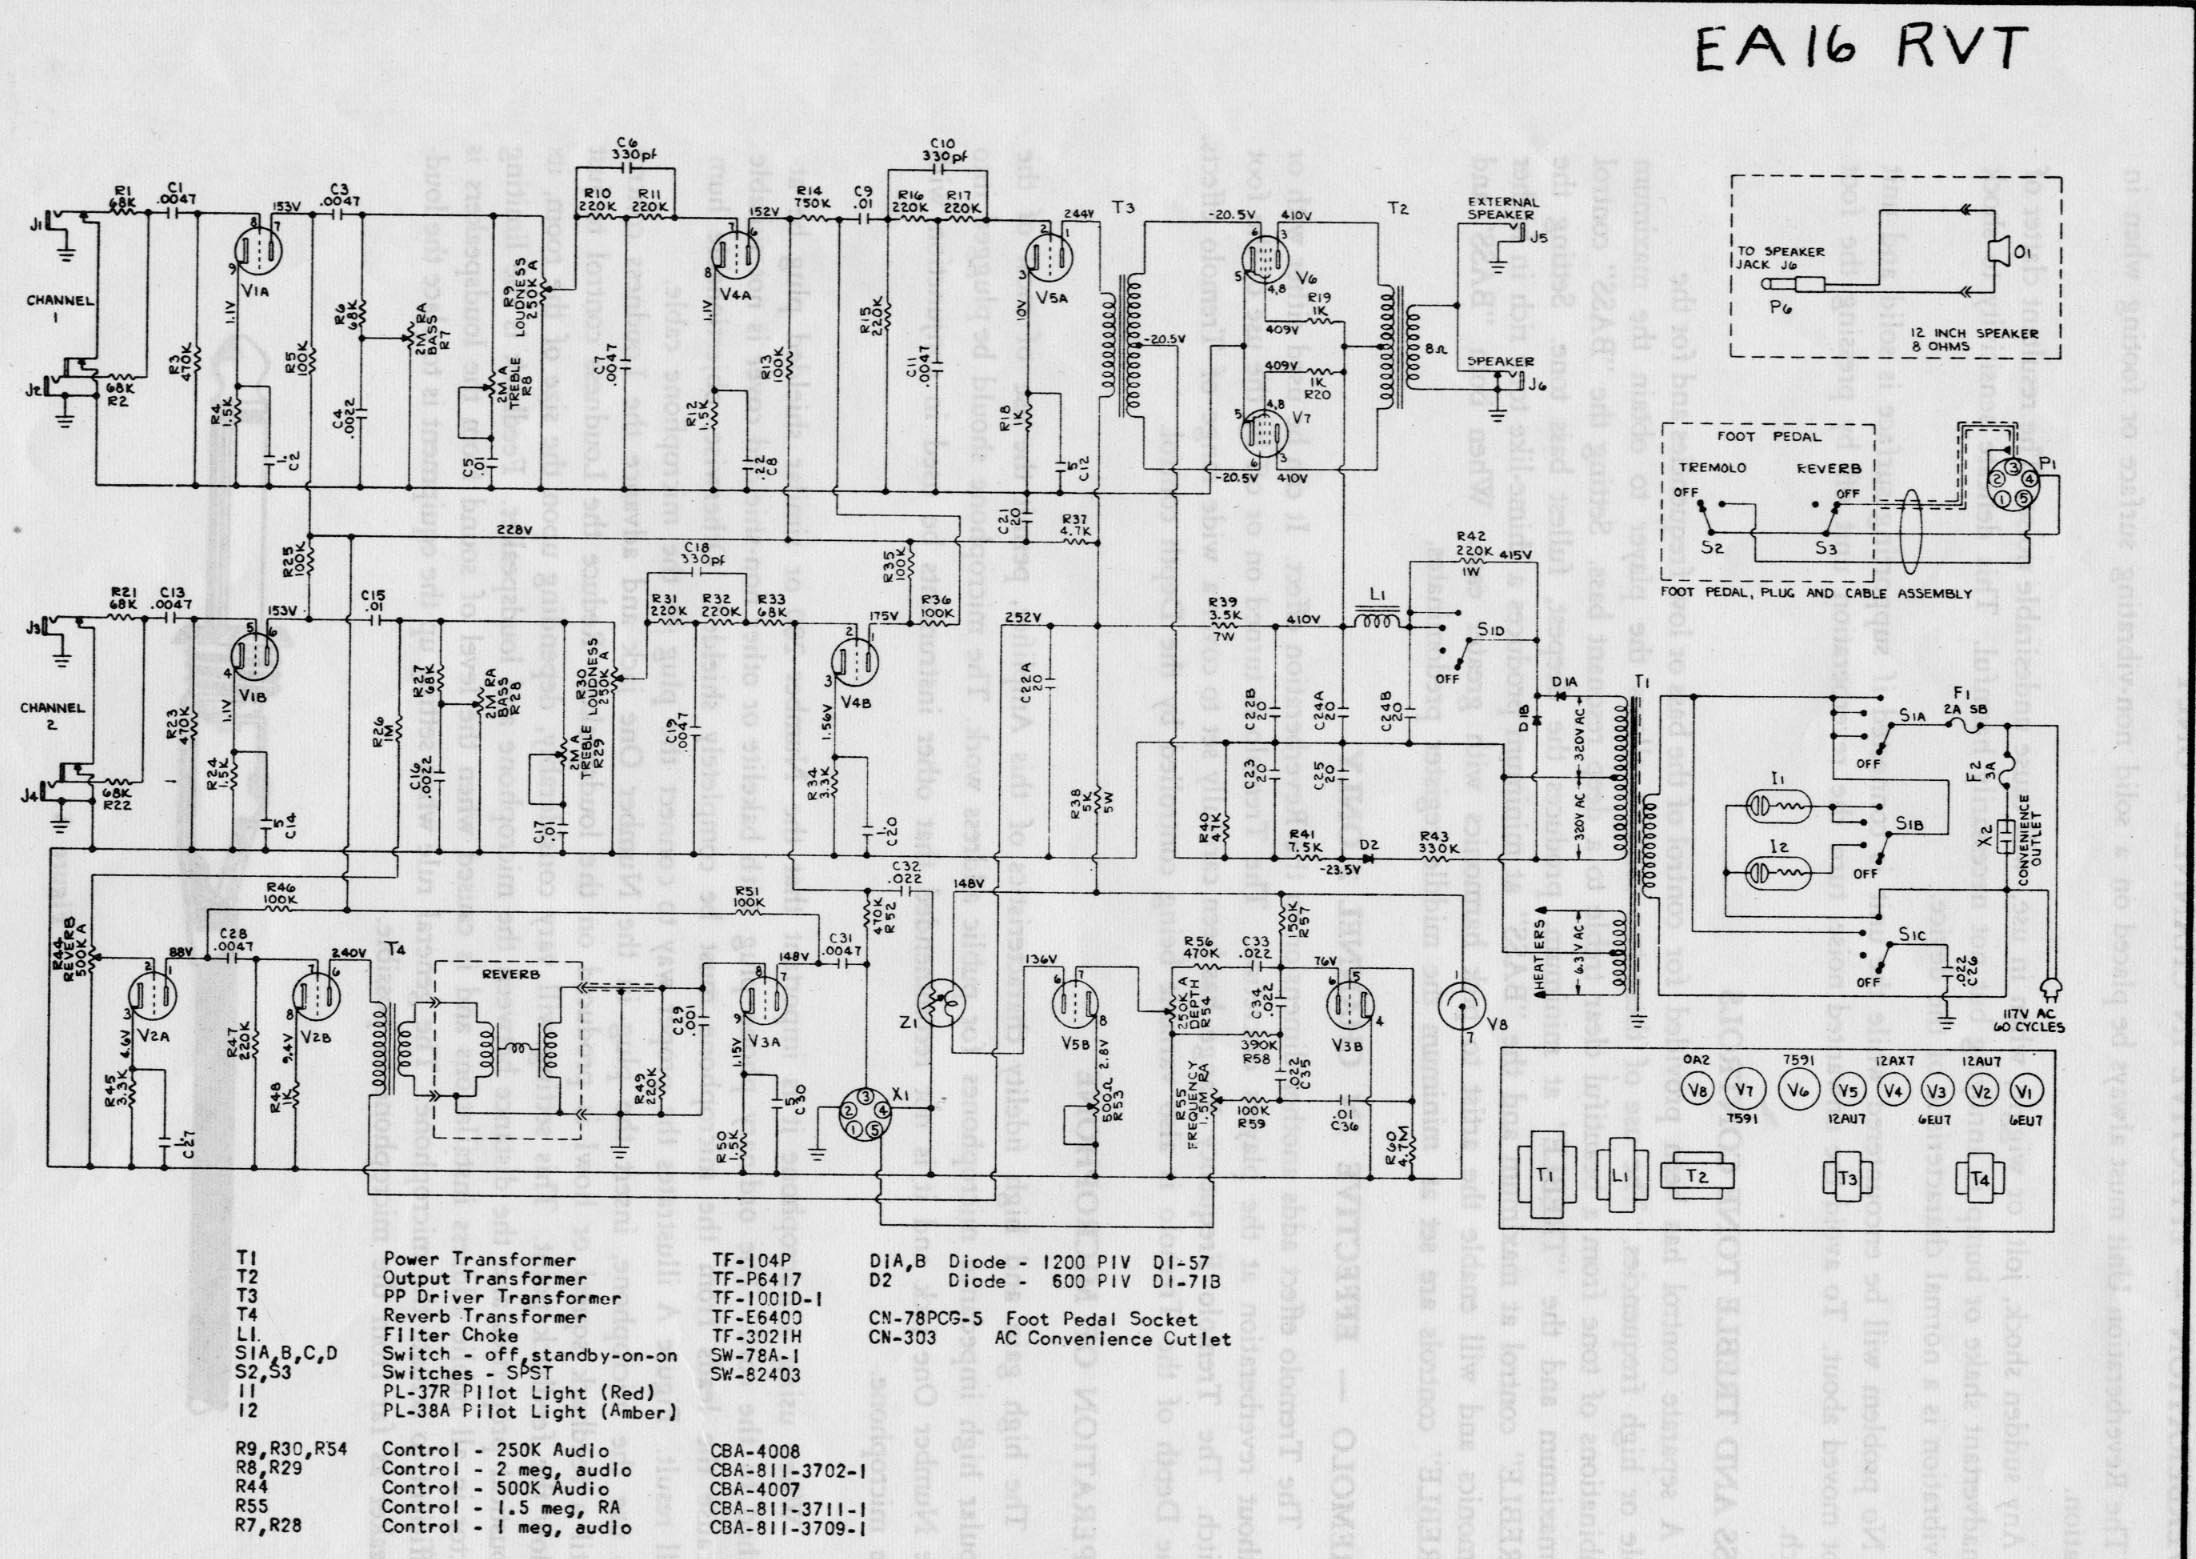 Swell Gibson L6S Wiring Diagram Wiring Library Wiring Cloud Xortanetembamohammedshrineorg